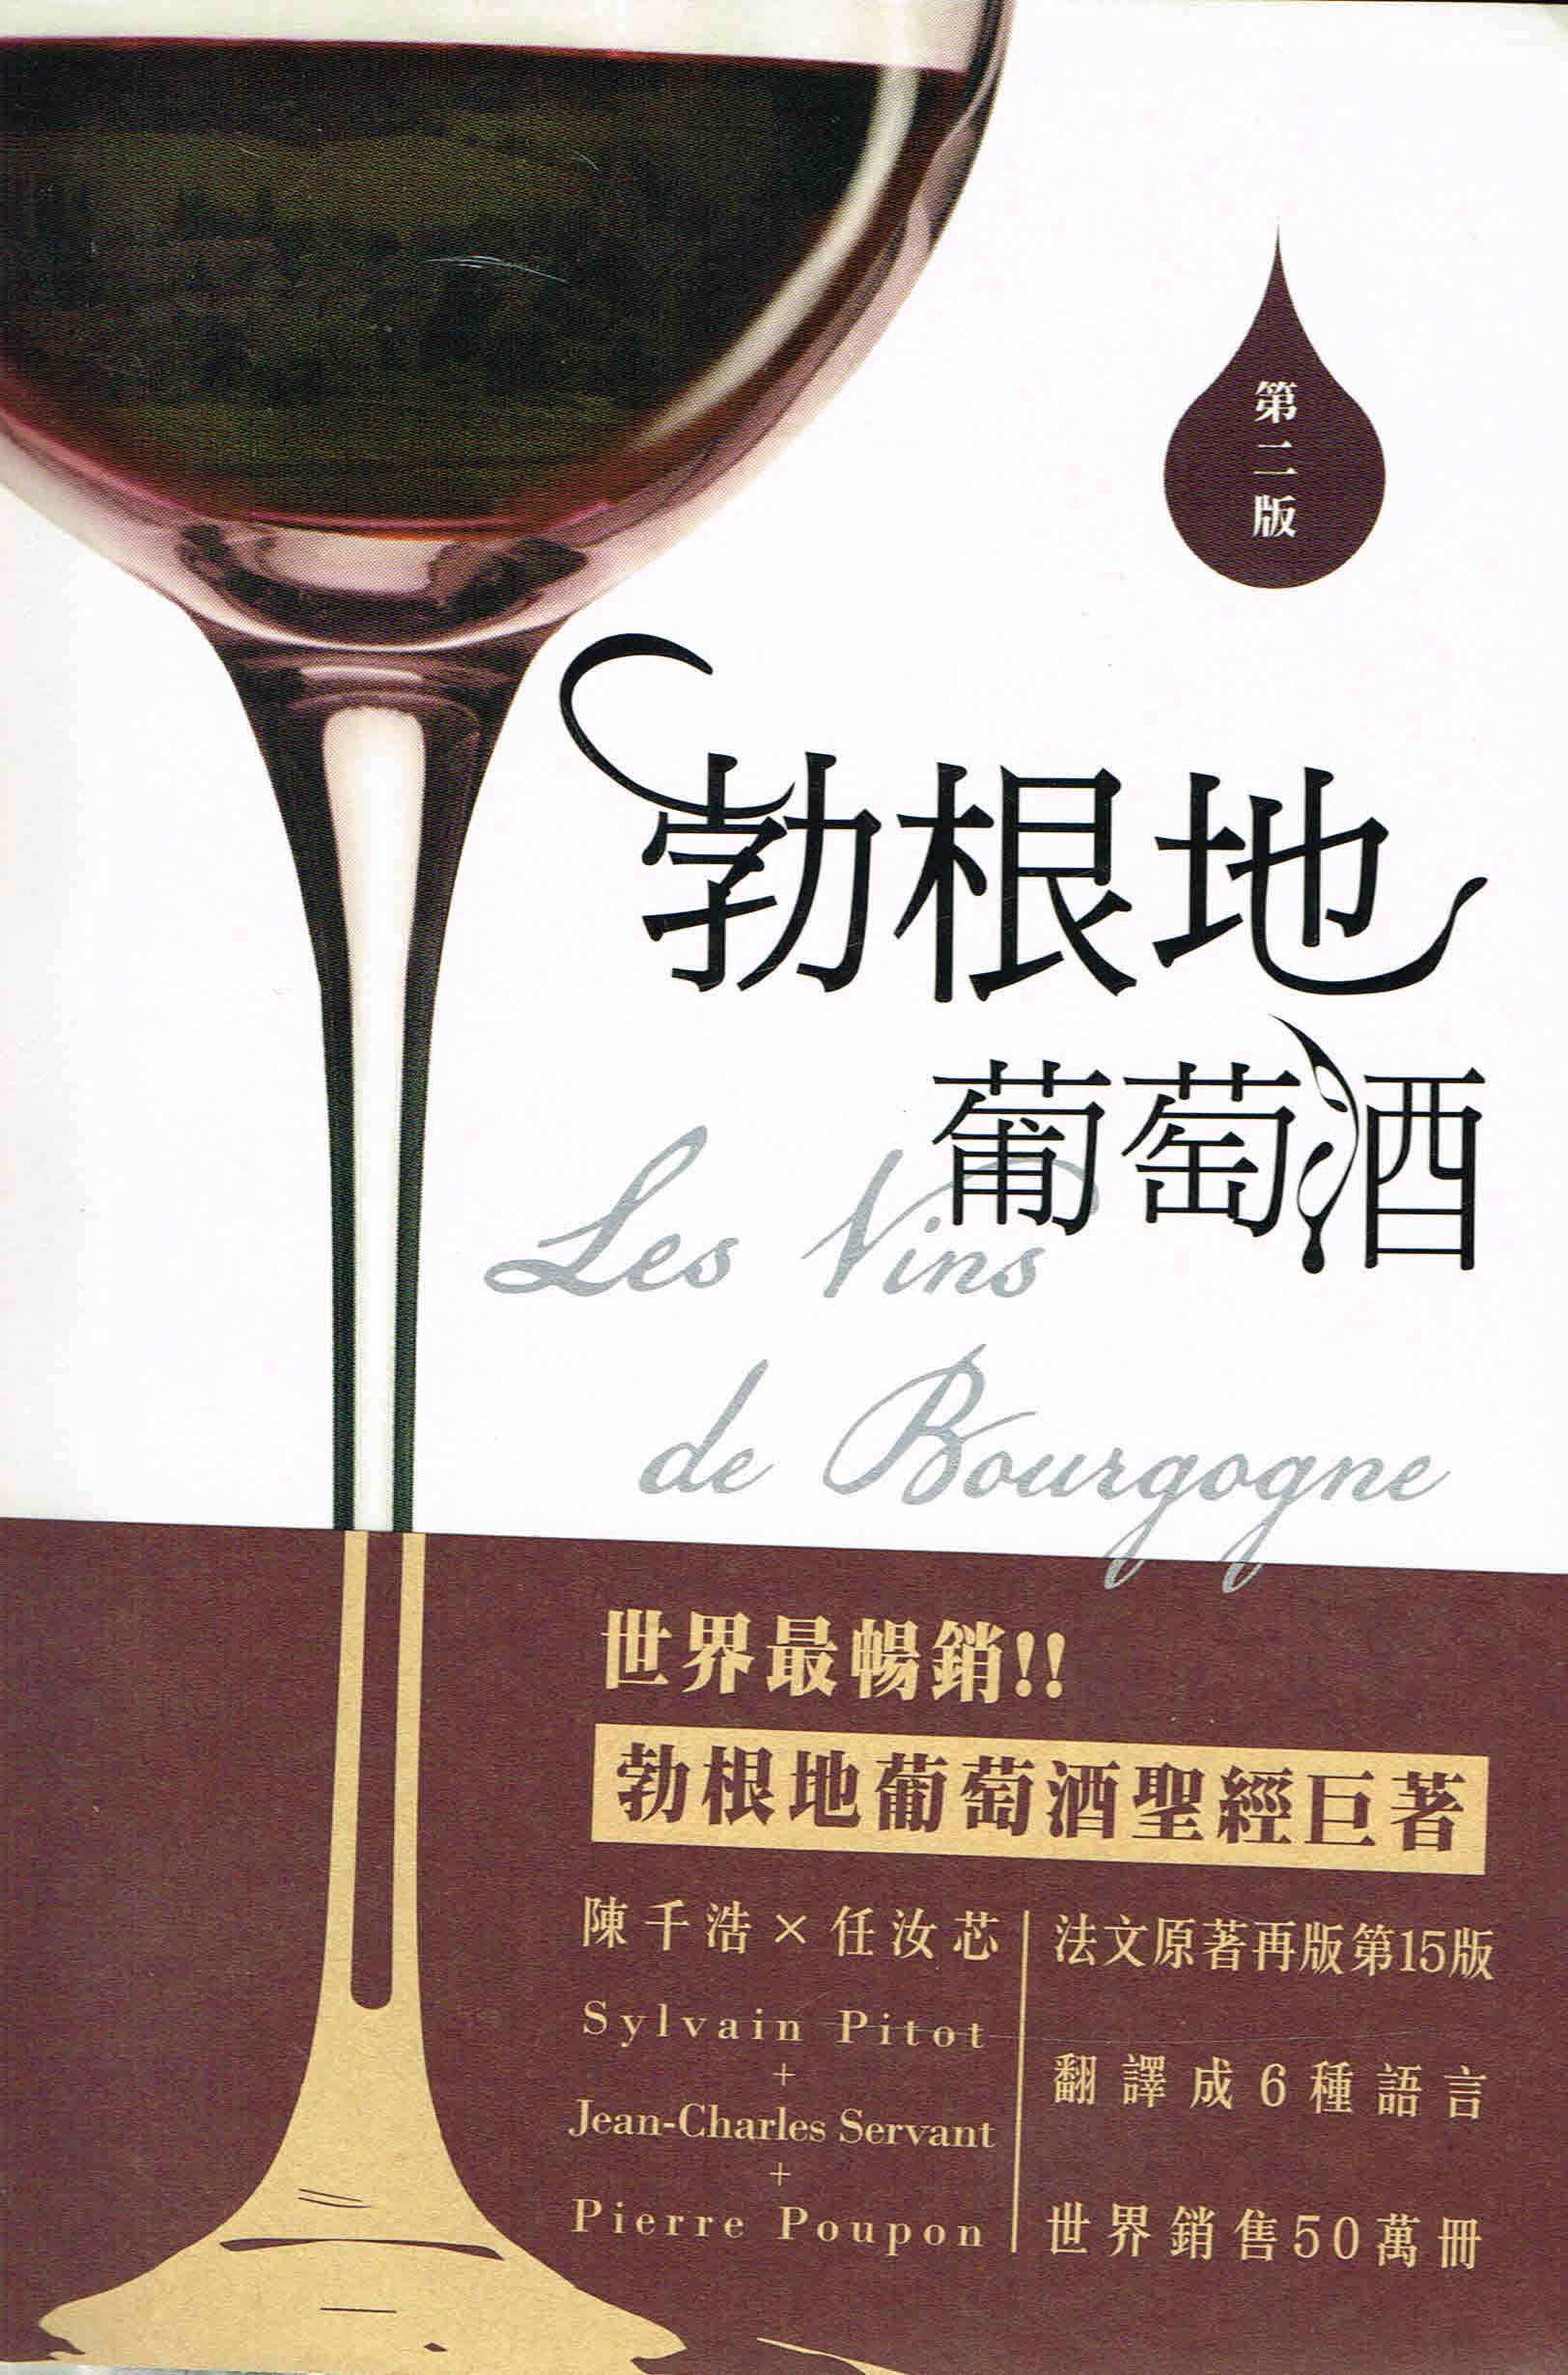 LES VINS DE BOURGOGNE - VERSION EN CHINOIS TRADITIONNEL